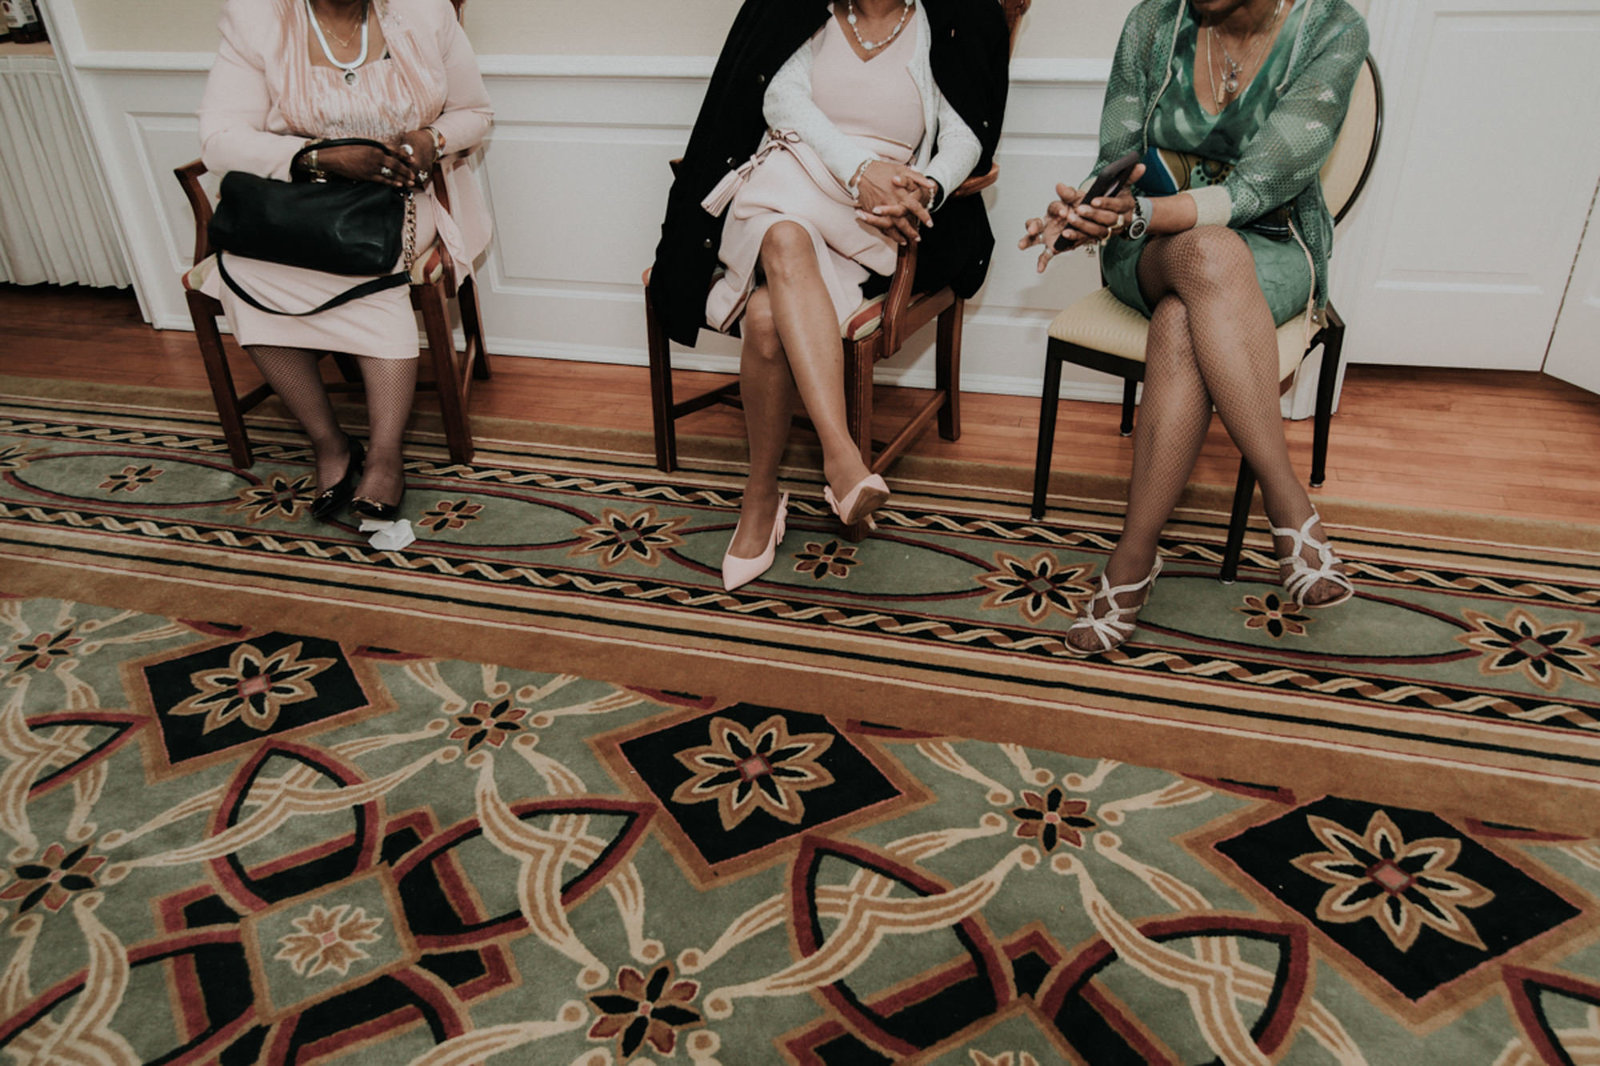 older women sitting waiting to go home at a wedding reception